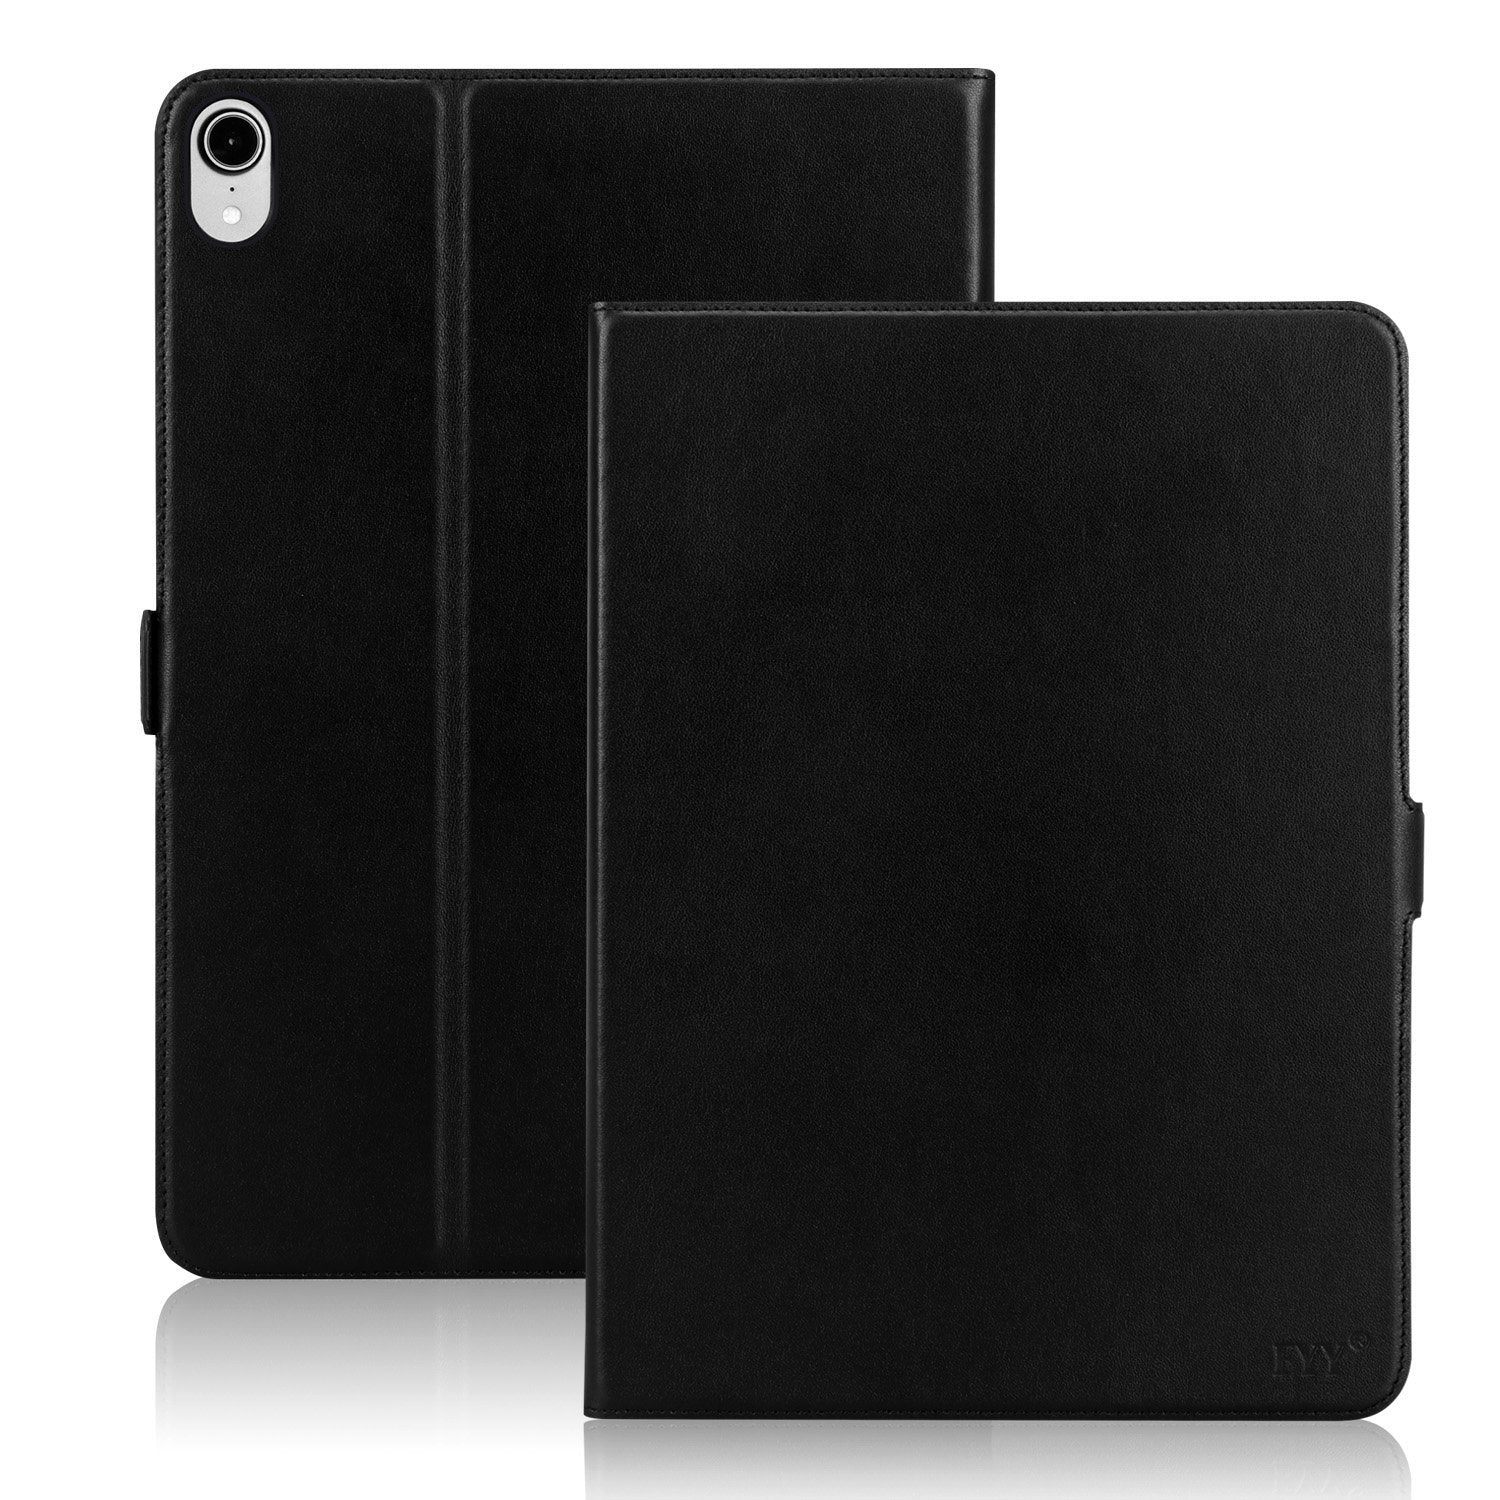 "Genuine Leather Case for iPad Pro 12.9""(2018)"